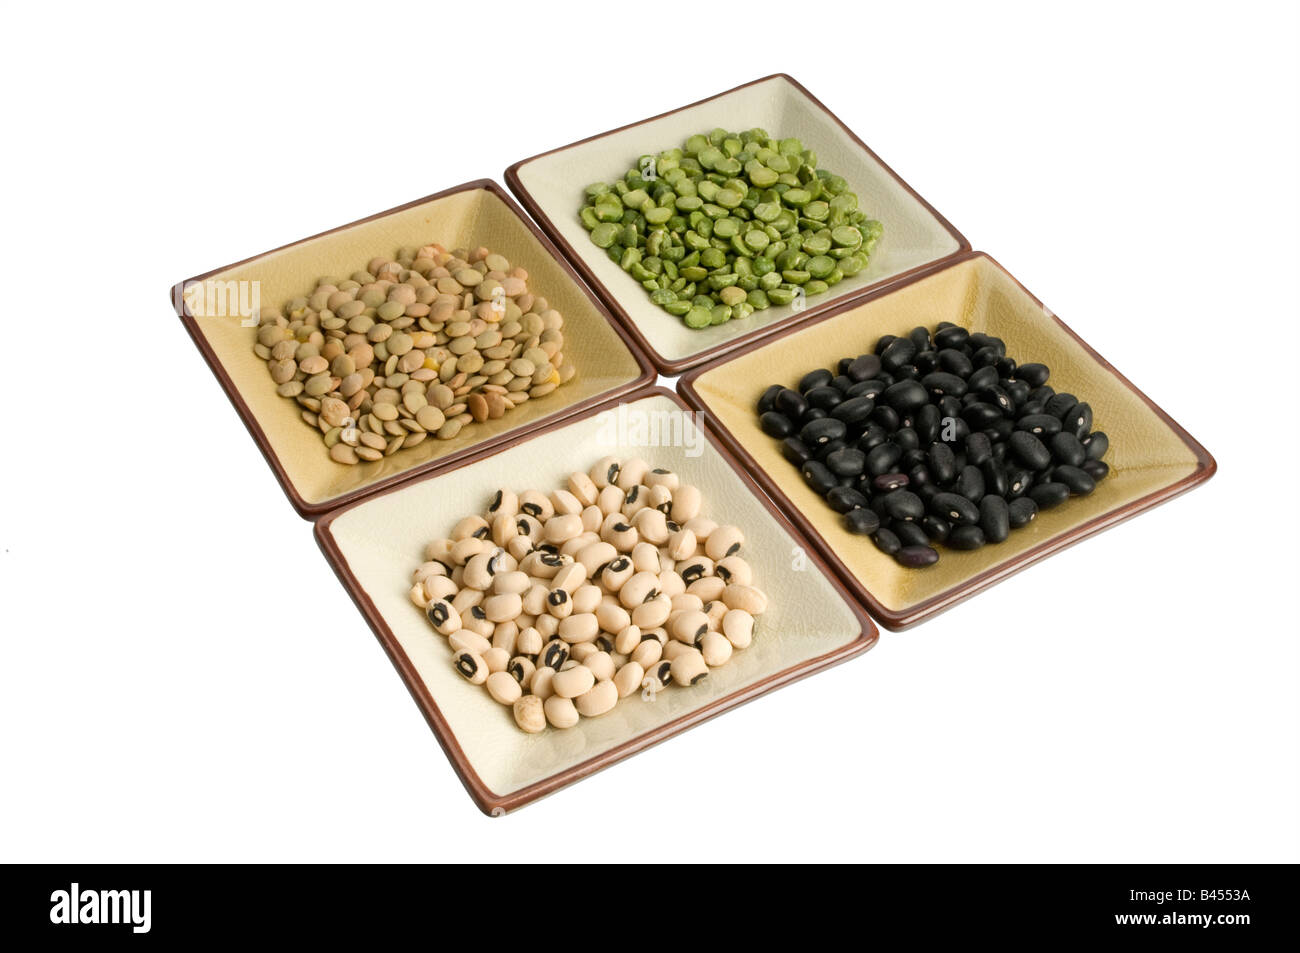 four dishes of lentils, peas, beans, black eyed peas Stock Photo